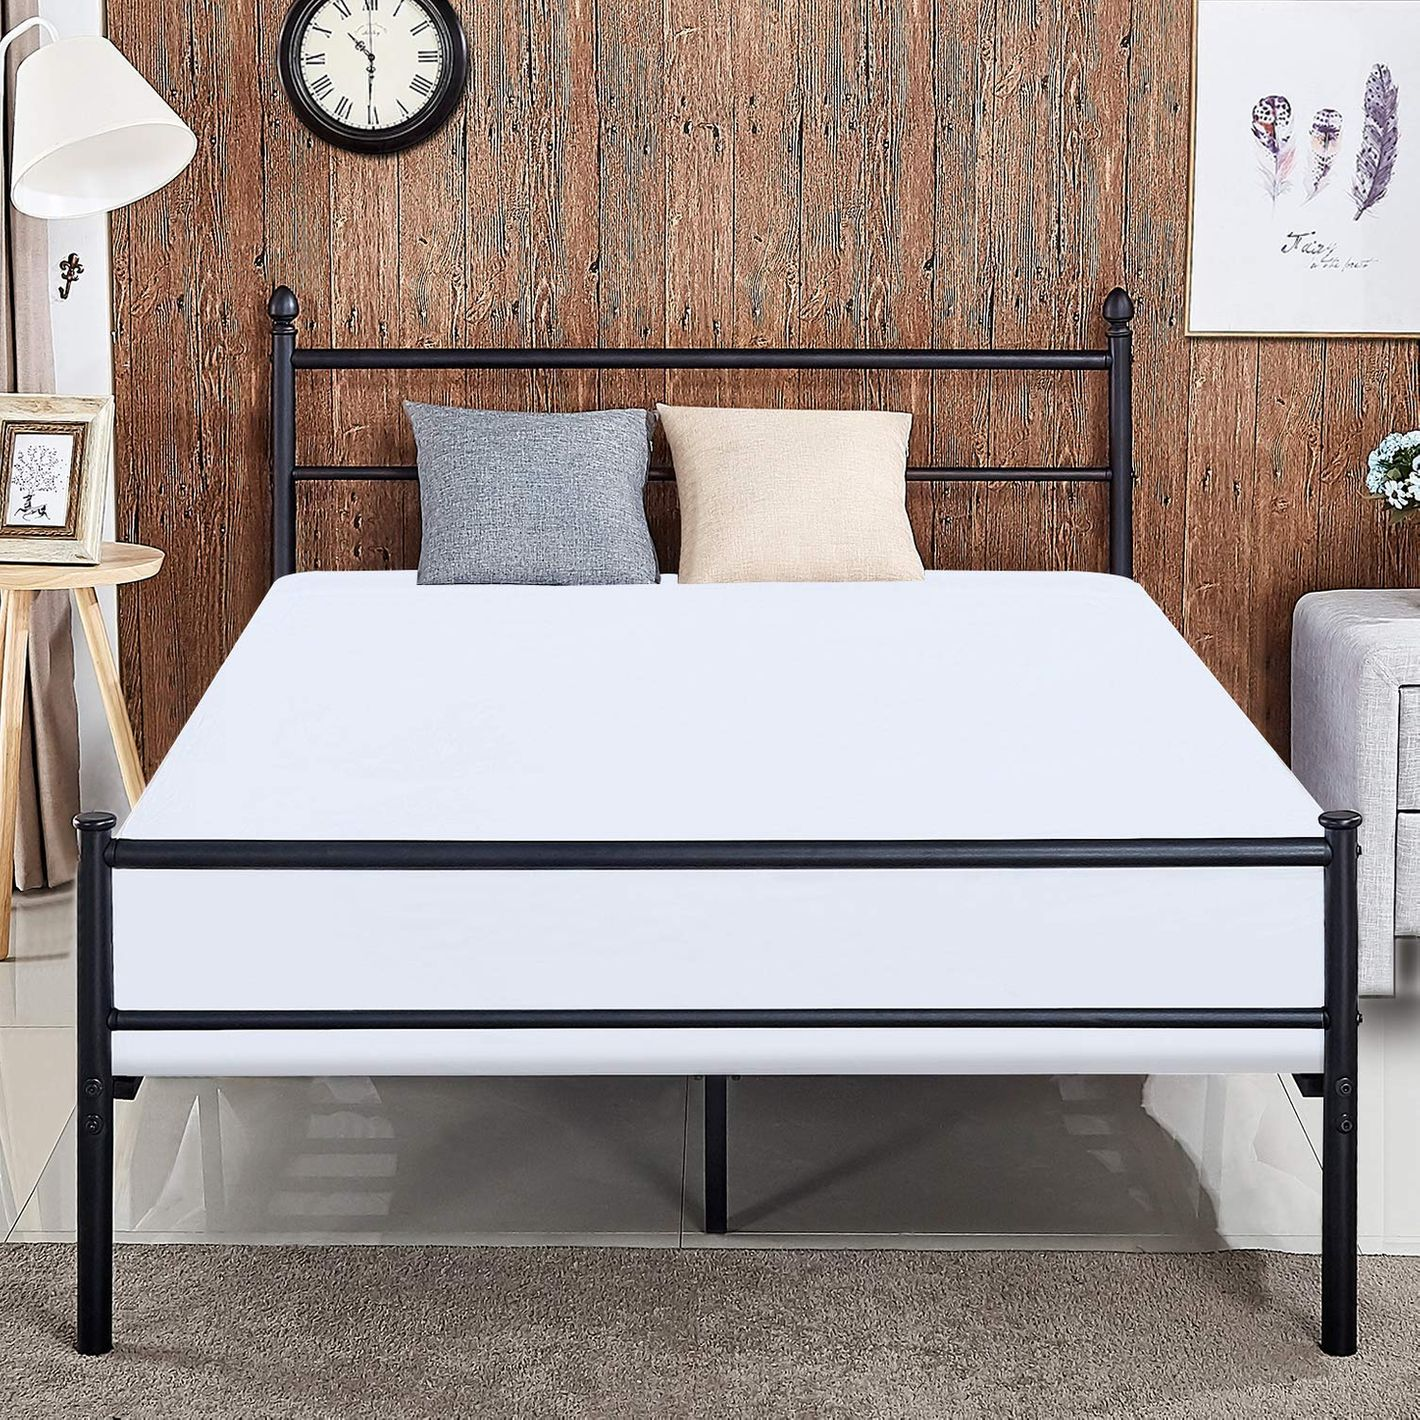 Vecelo Reinforced Metal Bed Frame — Queen